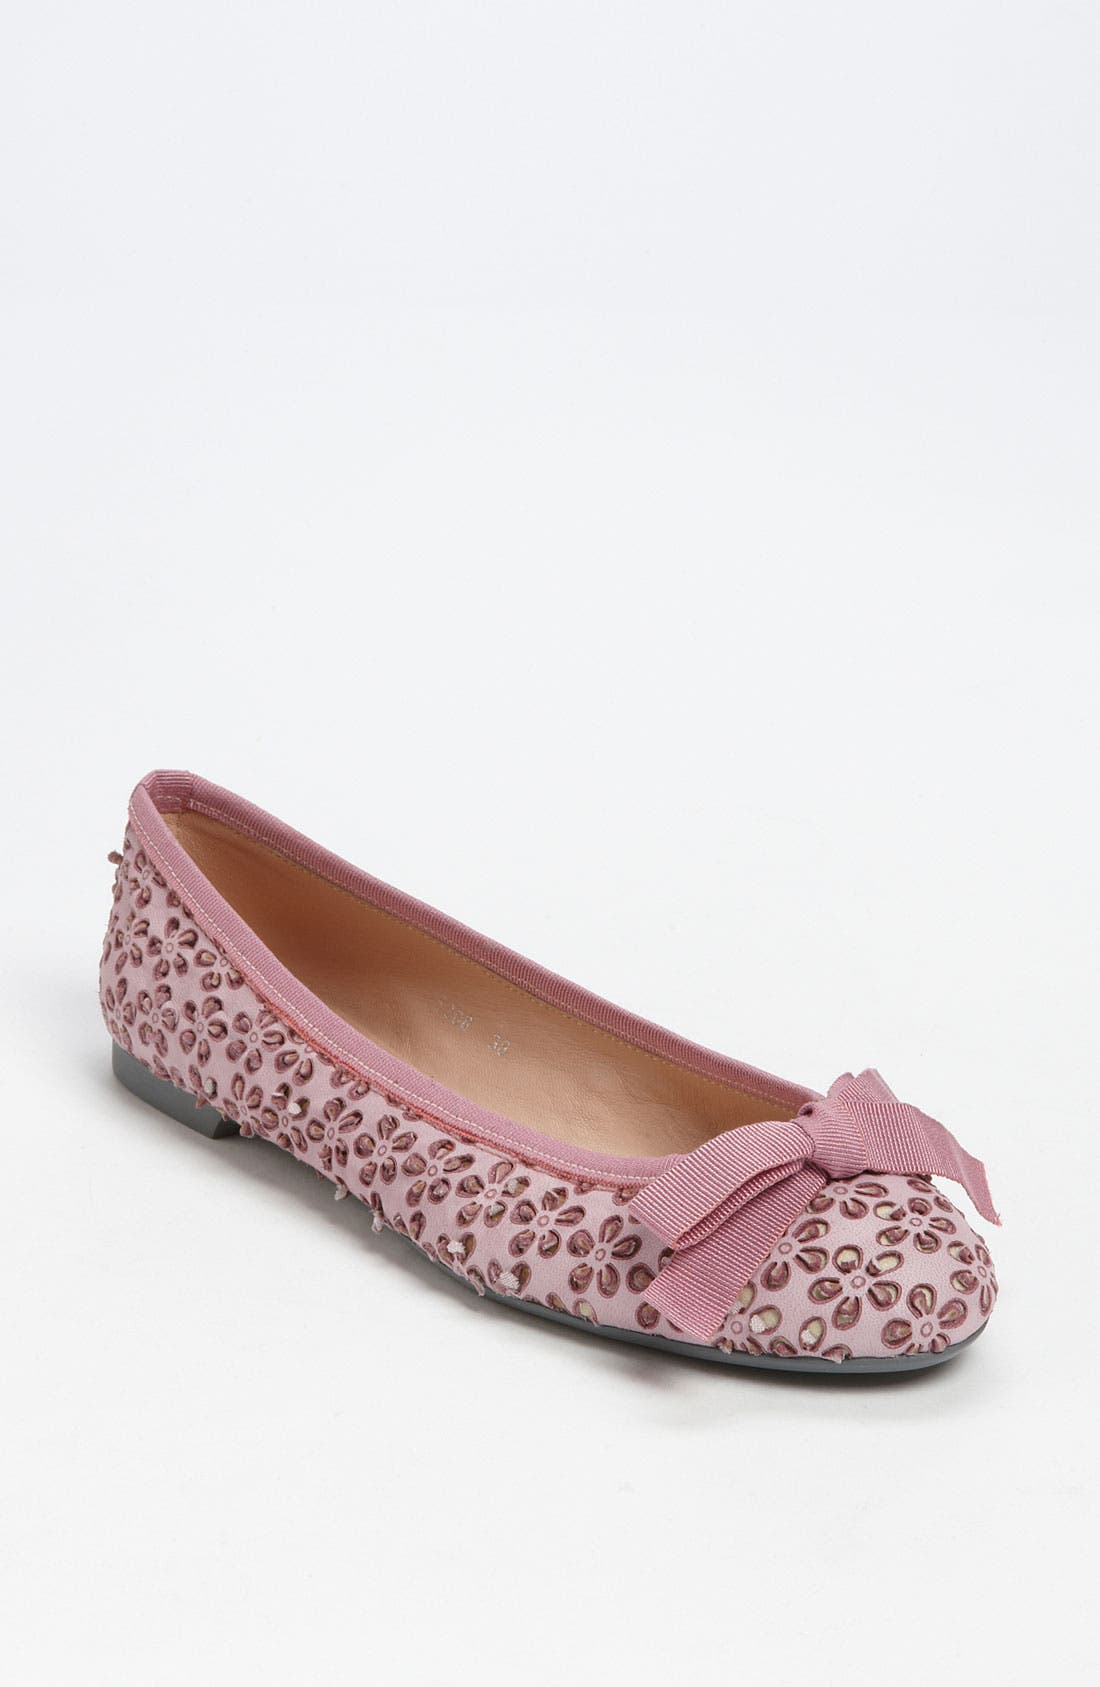 Alternate Image 1 Selected - Sweet Ballerina '1308' Ballet Flat